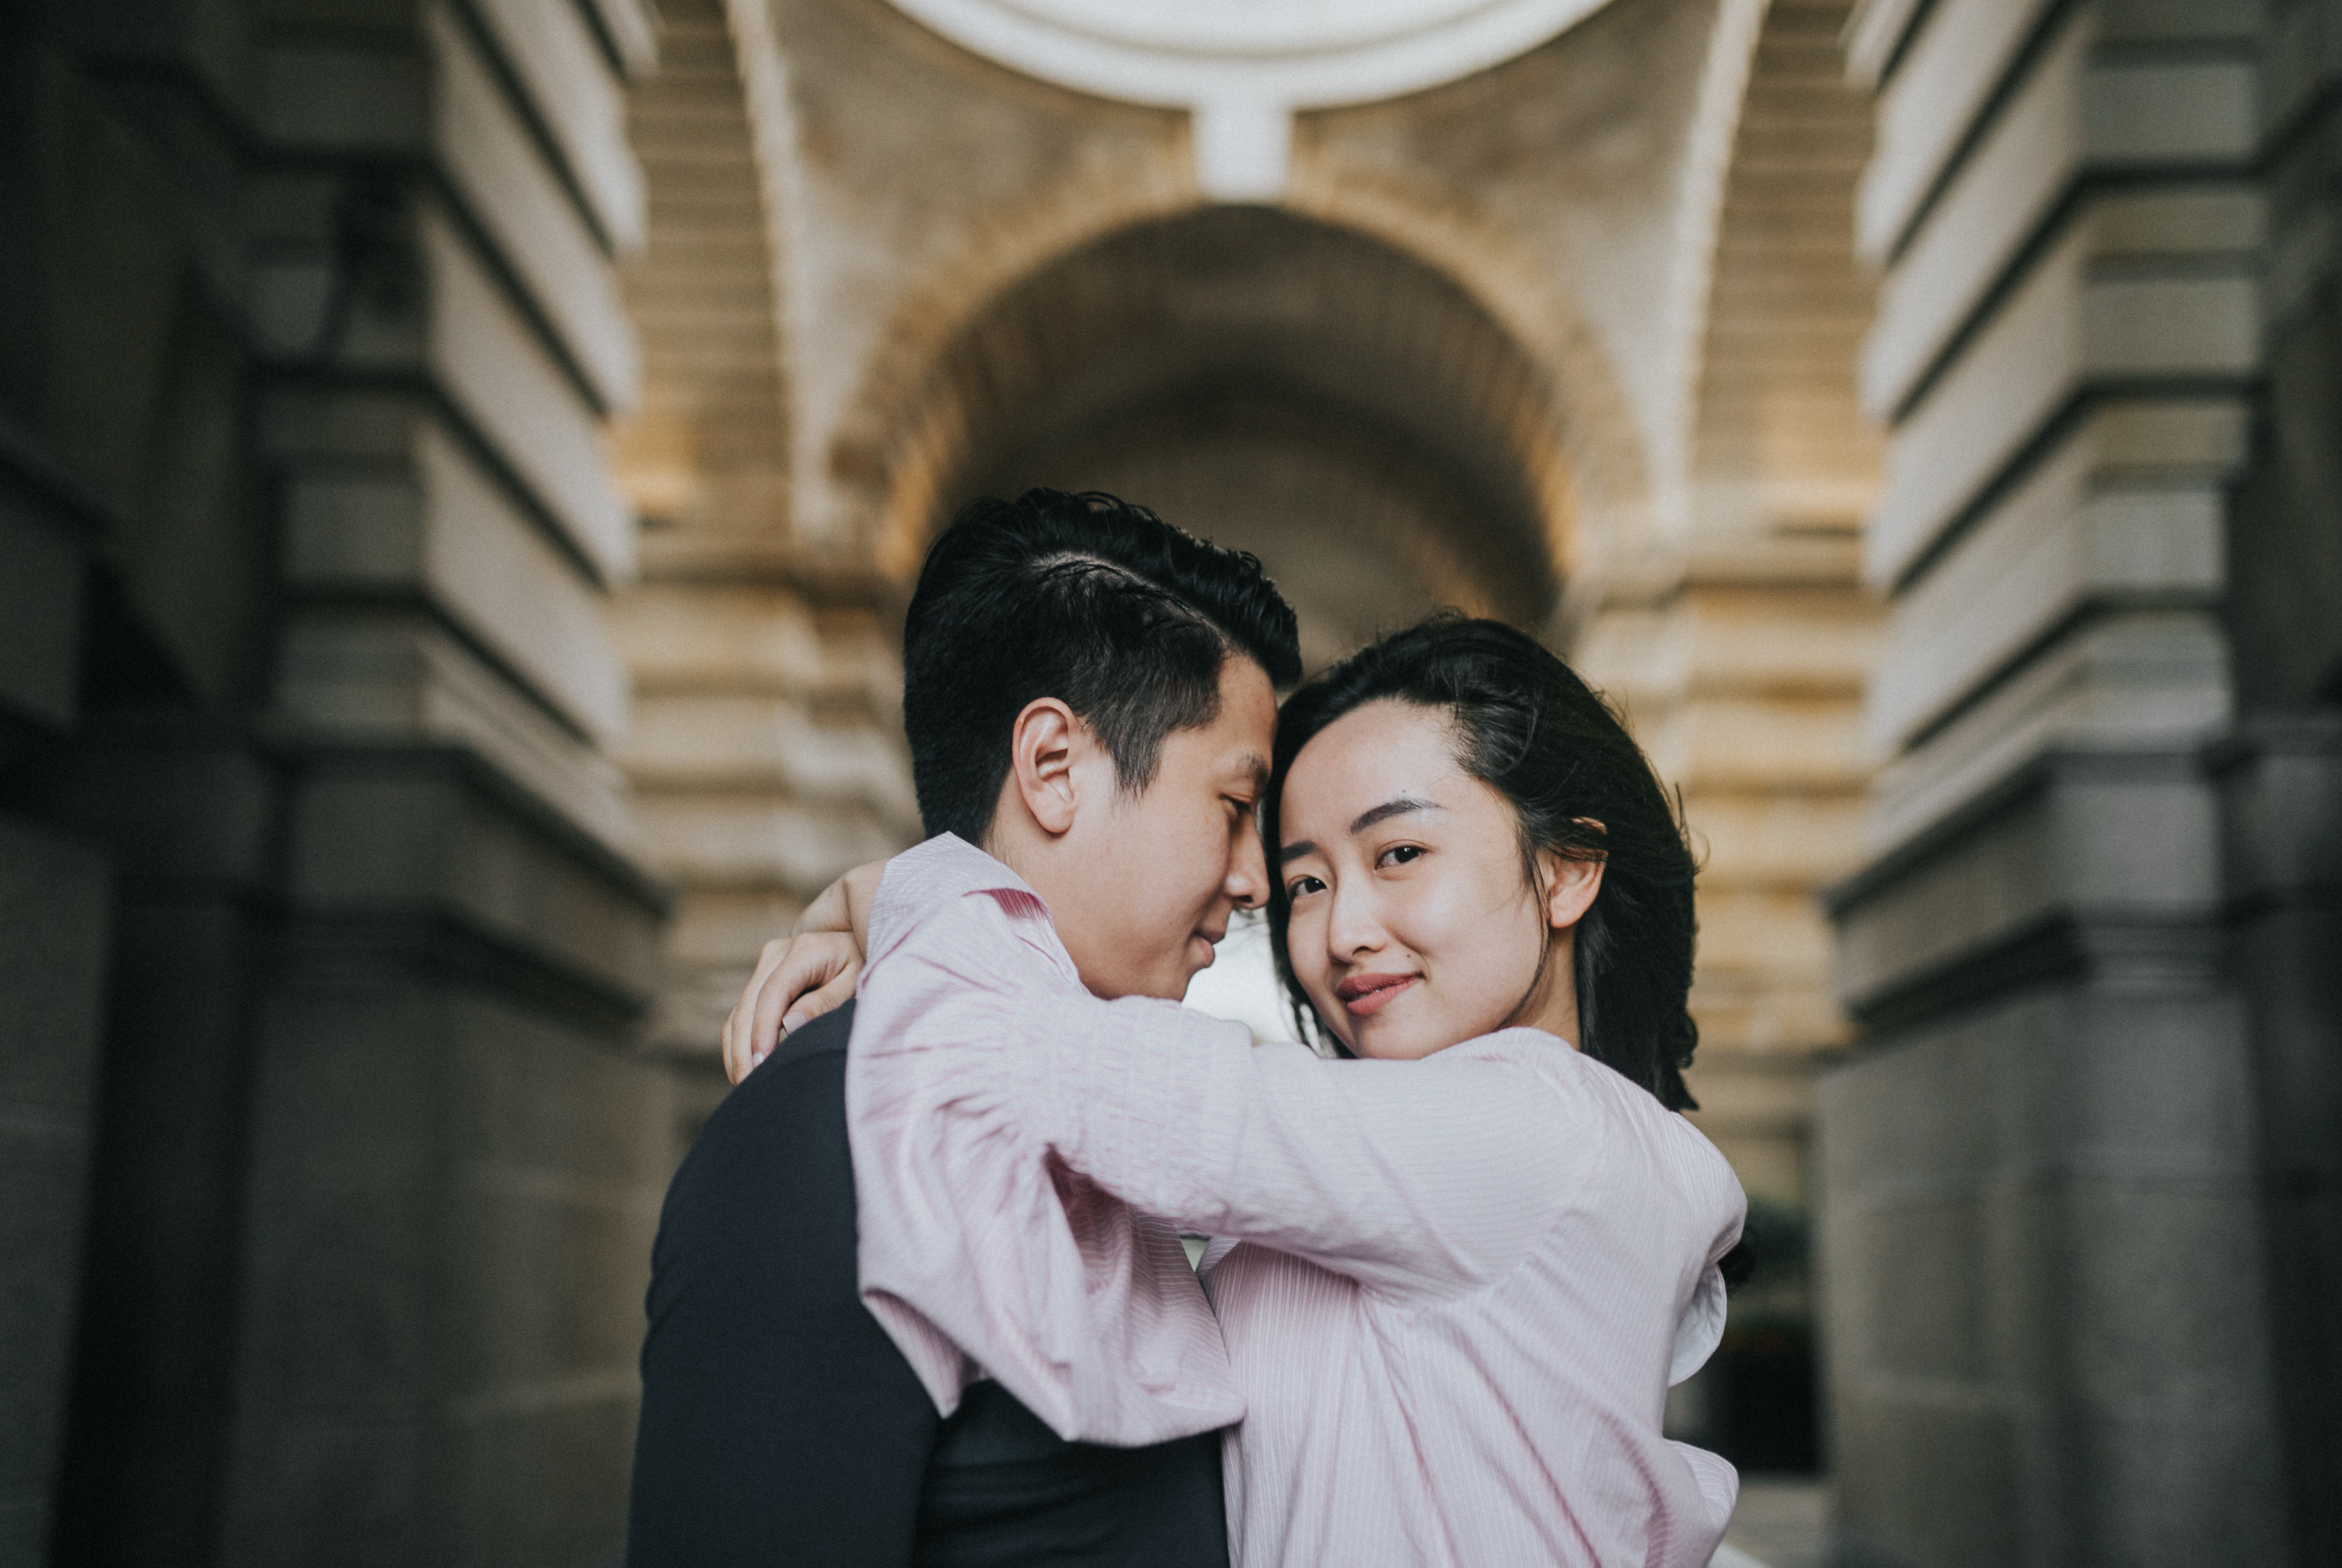 fun engagement shoot ideas in london pre wedding at wesminster soho and south bank